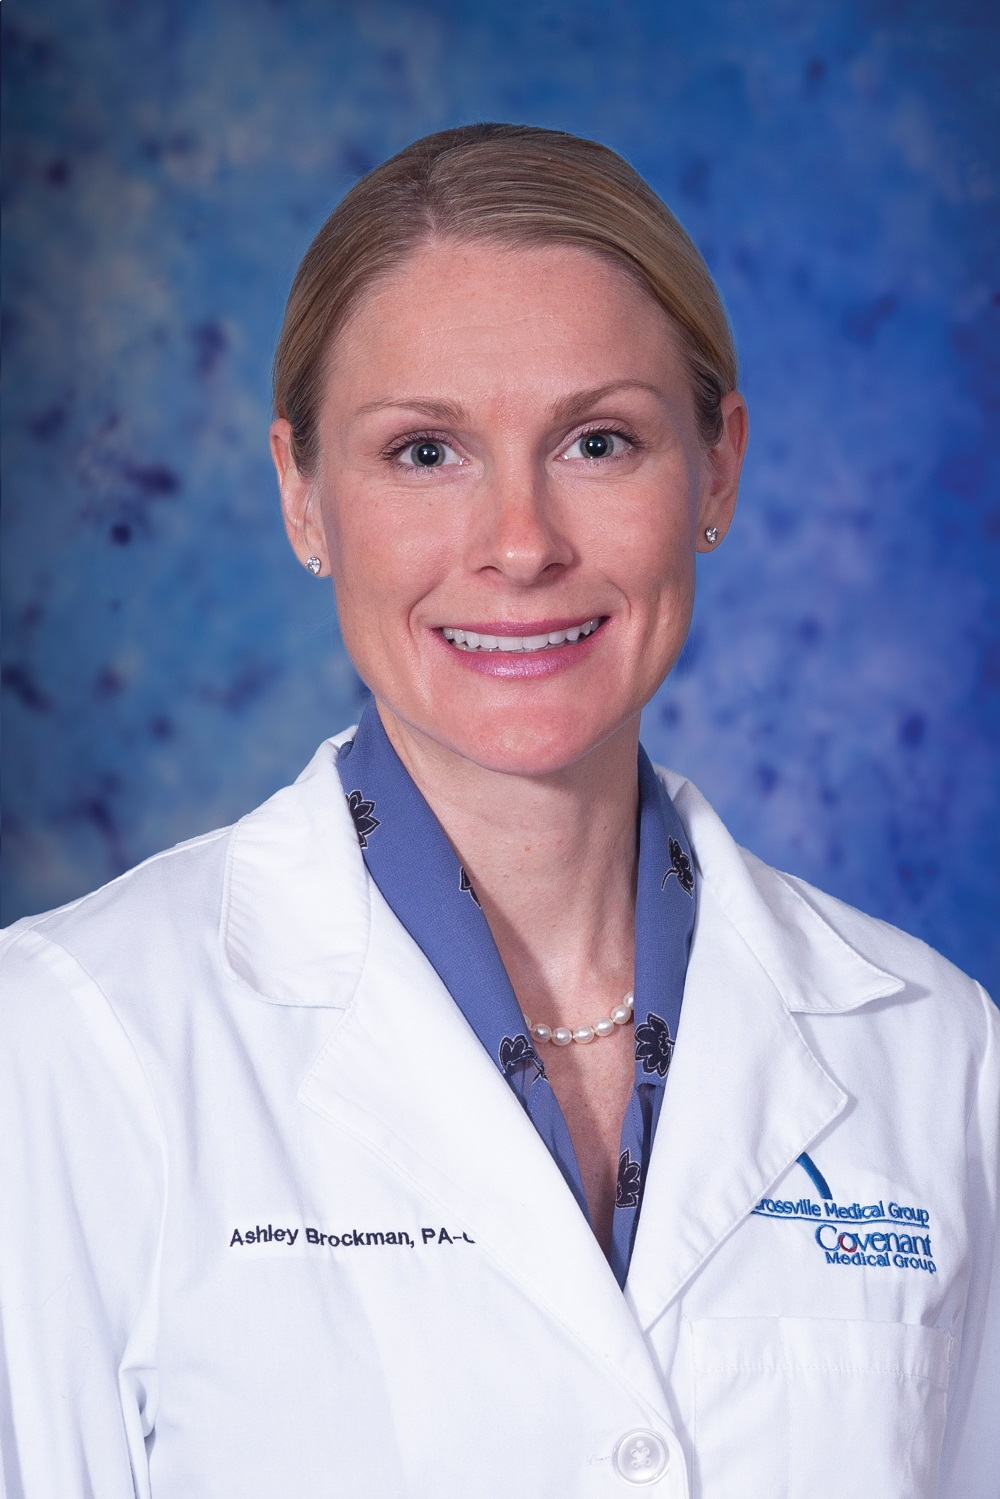 Ashley Brockman, PA-C is a member of the healthcare team at Cumberland Diabetes Center.